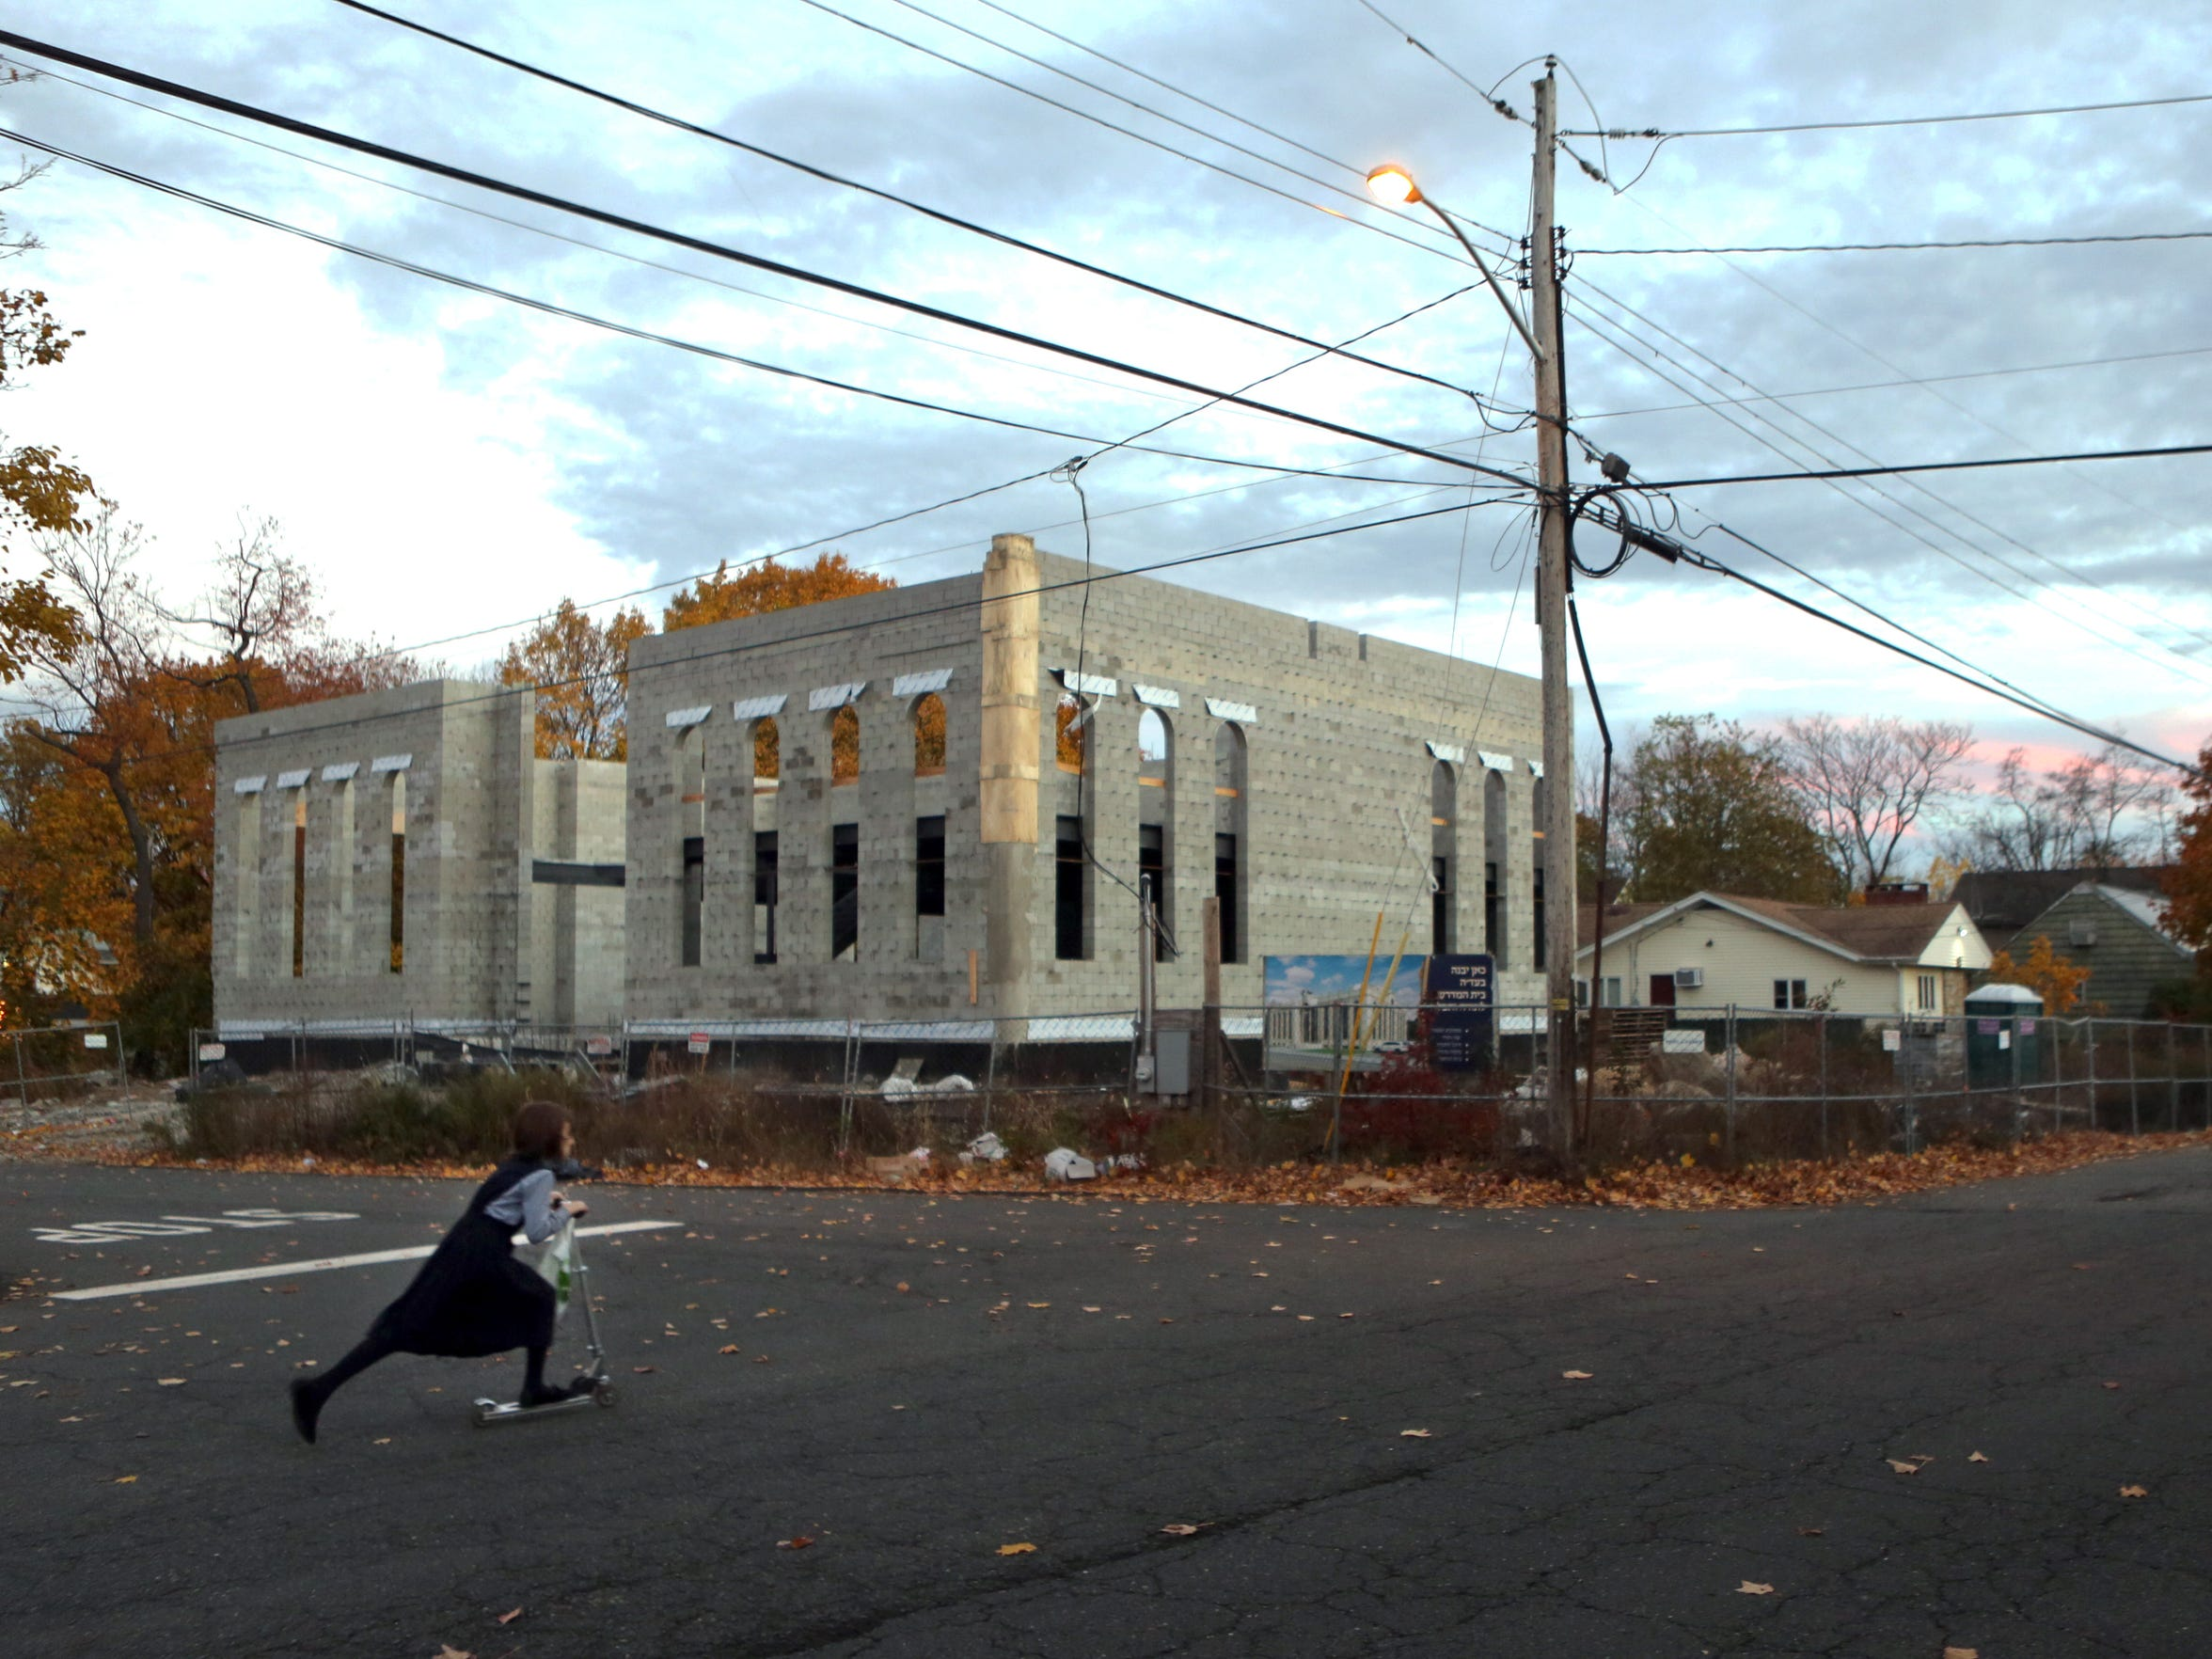 A synagogue under construction on Herrick Avenue in